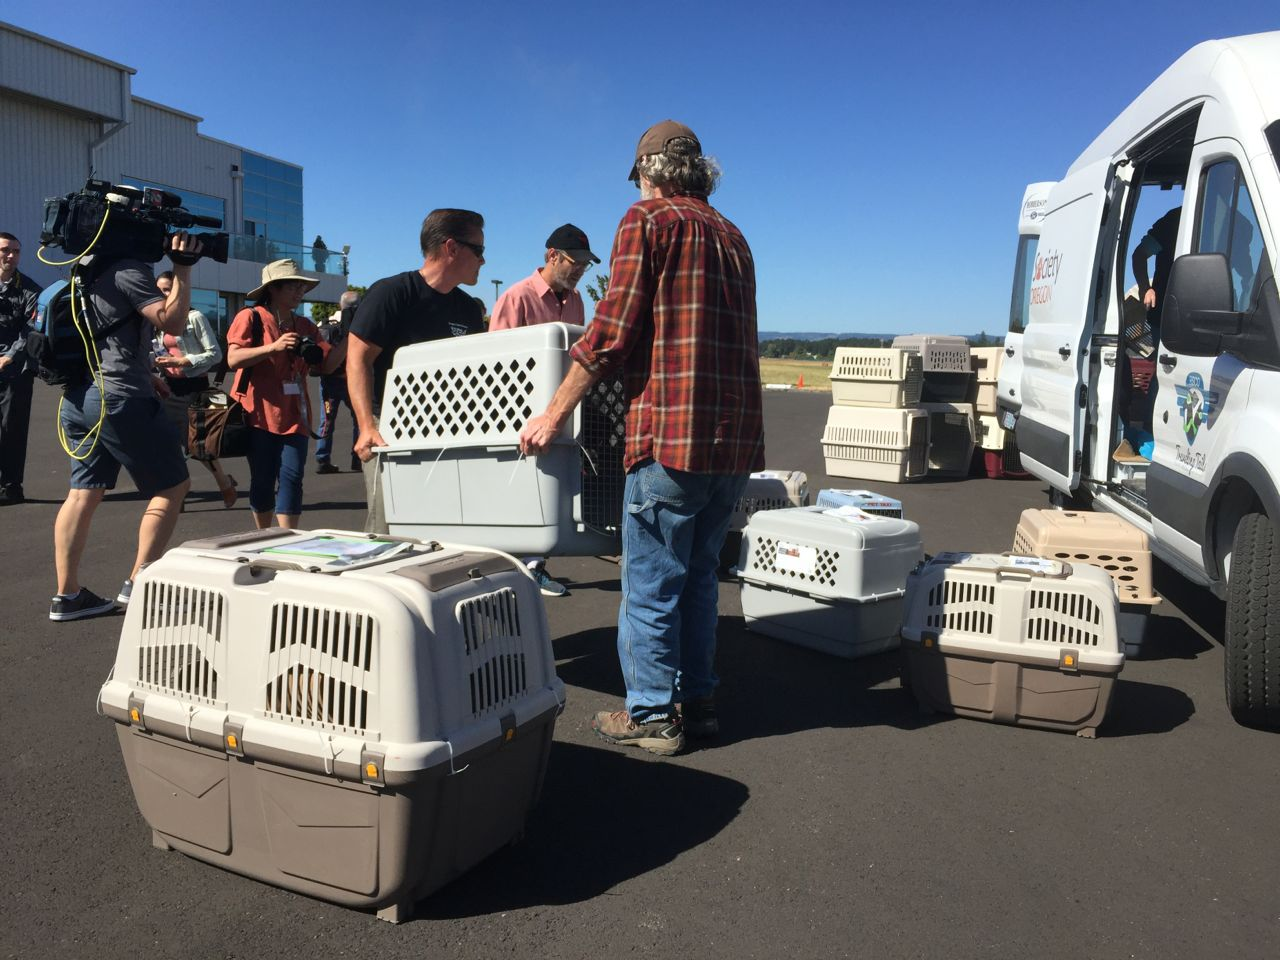 adopt dog vancouver Ten shelter dogs from Texas arrived courtesy ...